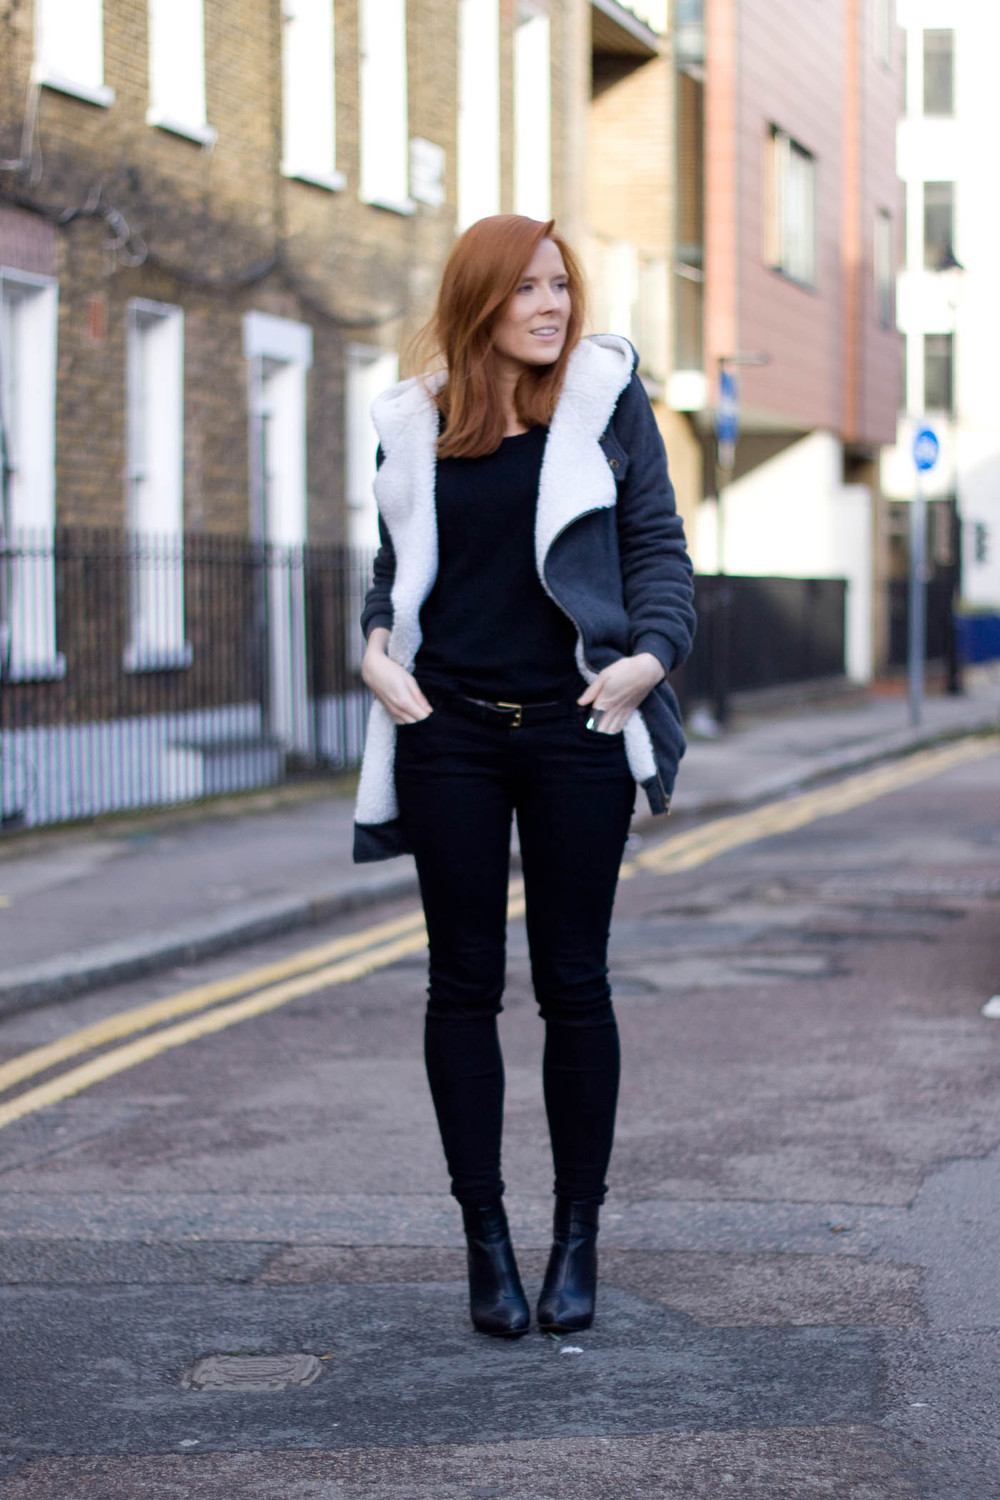 Yestyle  jacket -  Urban Outfitters  jeans - H&M jumper and shoes - Asos belt